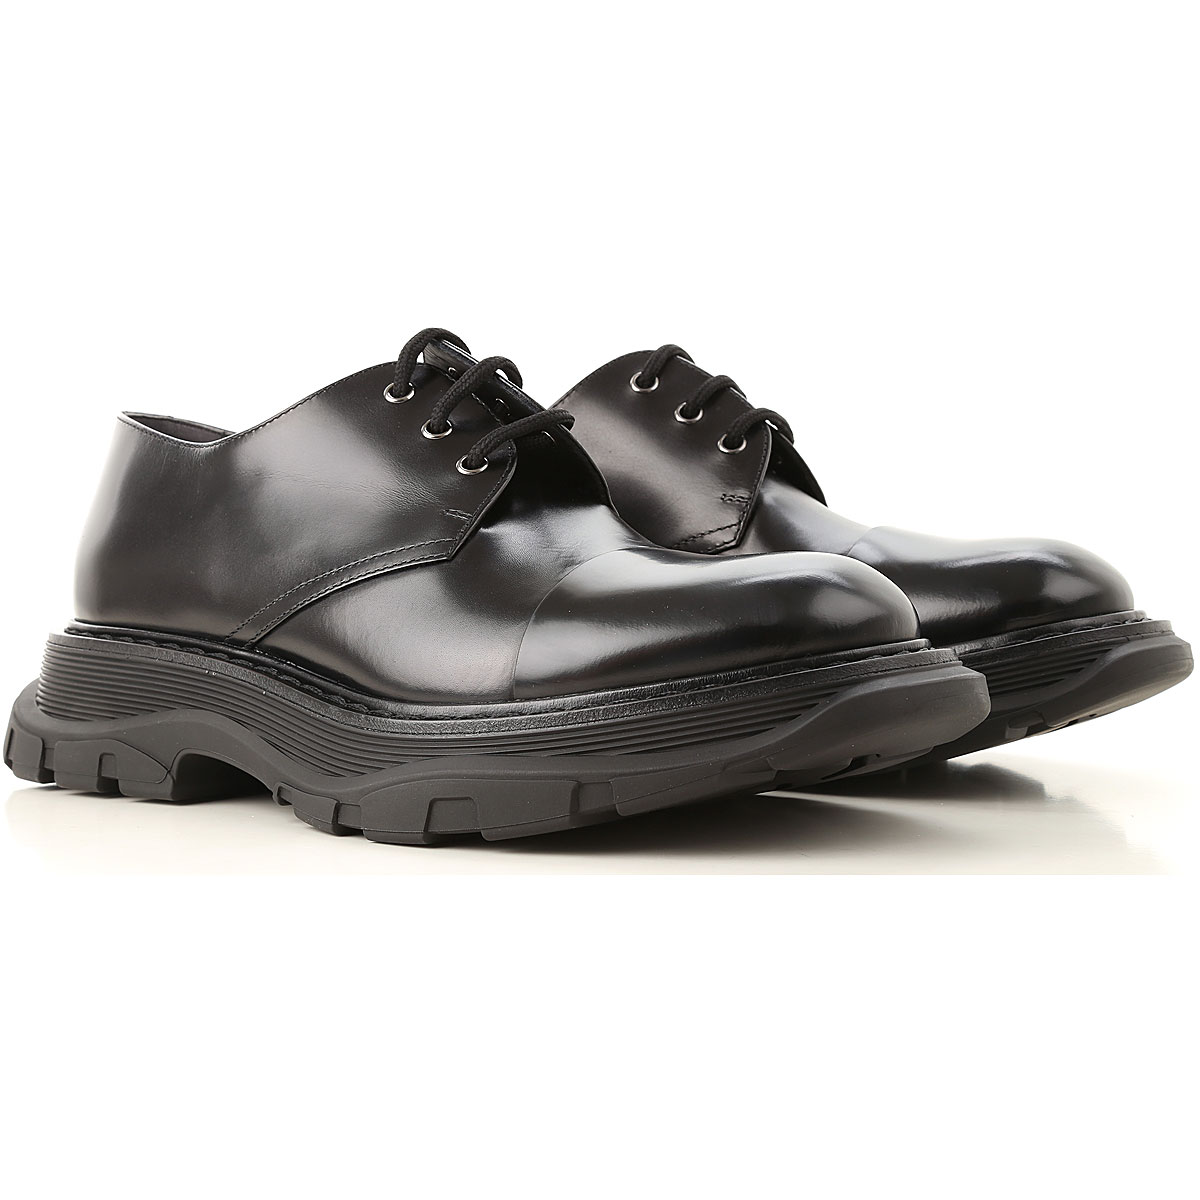 Image of Alexander McQueen Lace Up Shoes for Men Oxfords, Derbies and Brogues, Black, Leather, 2017, EUR 39 - US 6 - UK 5 EUR 40.5 - US 7.5 - UK 6.5 EUR 40 - US 7 - UK 6 EUR 41 - US 8 - UK 7 EUR 42 - US 9 - UK 8 EUR 44 - US 11 - UK 10